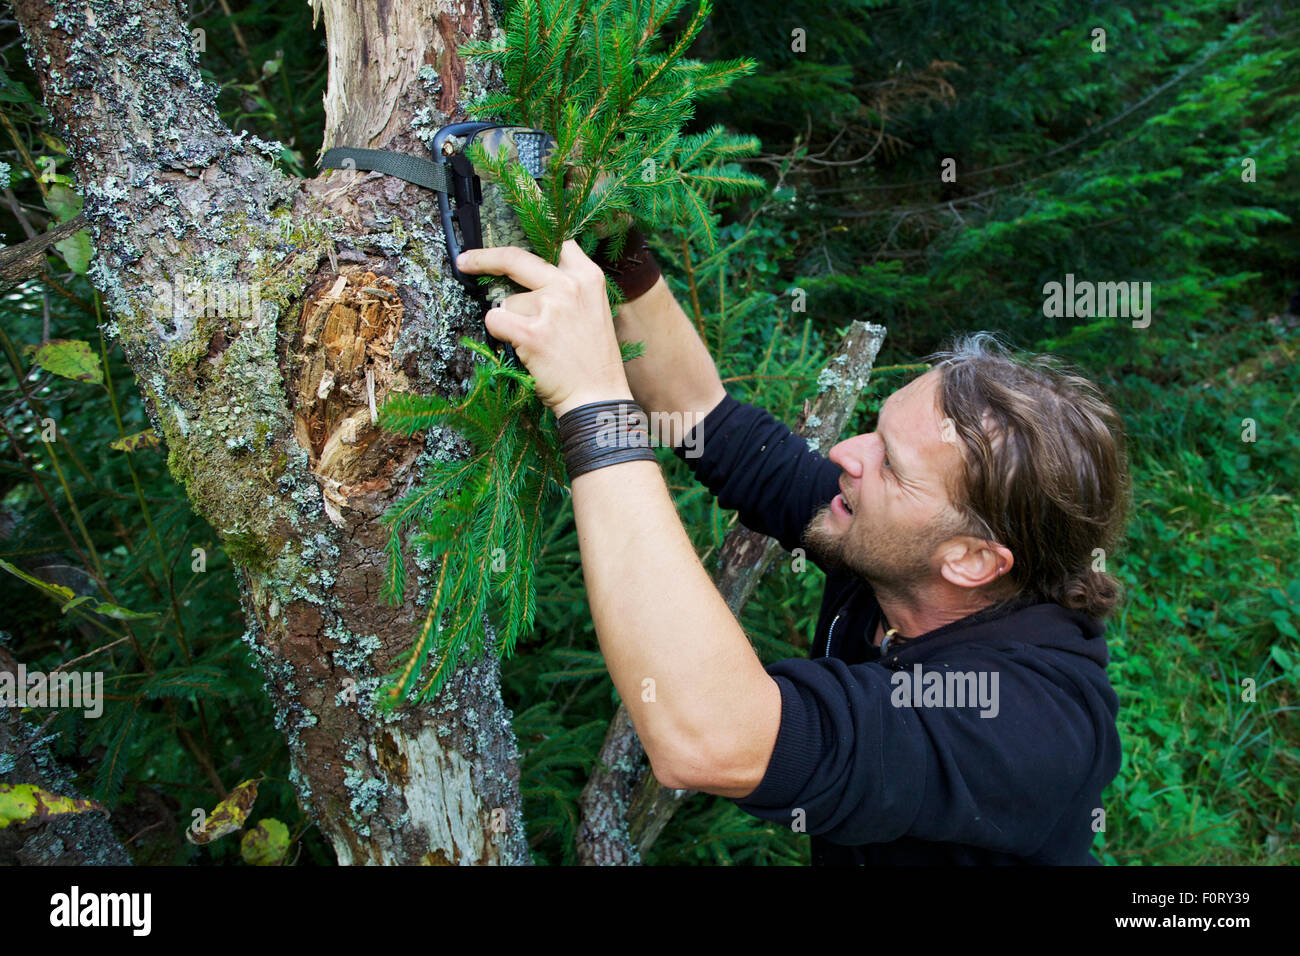 Wildlife biologist mounting an infra-red triggered wildlife monitoring camera to a tree pointing towards a wallow - Stock Image